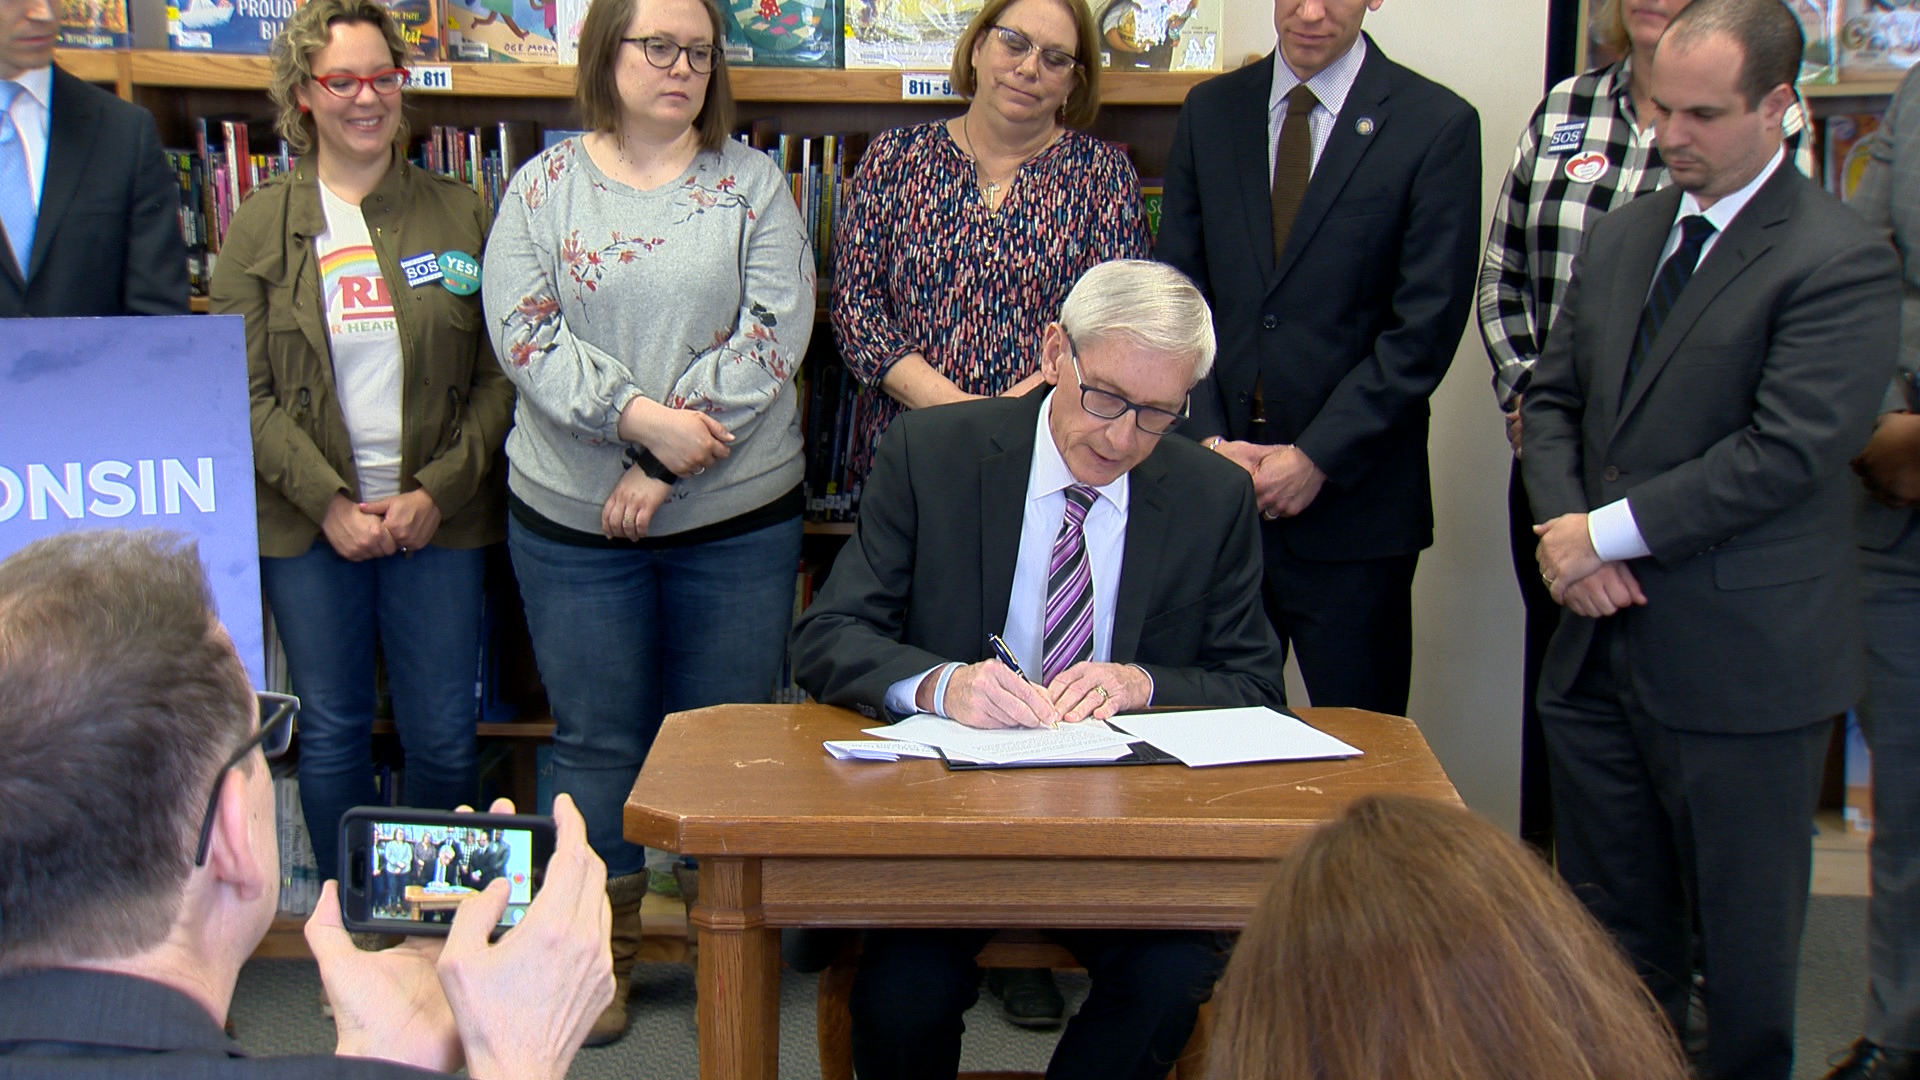 Gov. Tony Evers vetoes a Republican tax cut at Lincoln Elementary School in Wauwatosa Feb. 26, 2020.